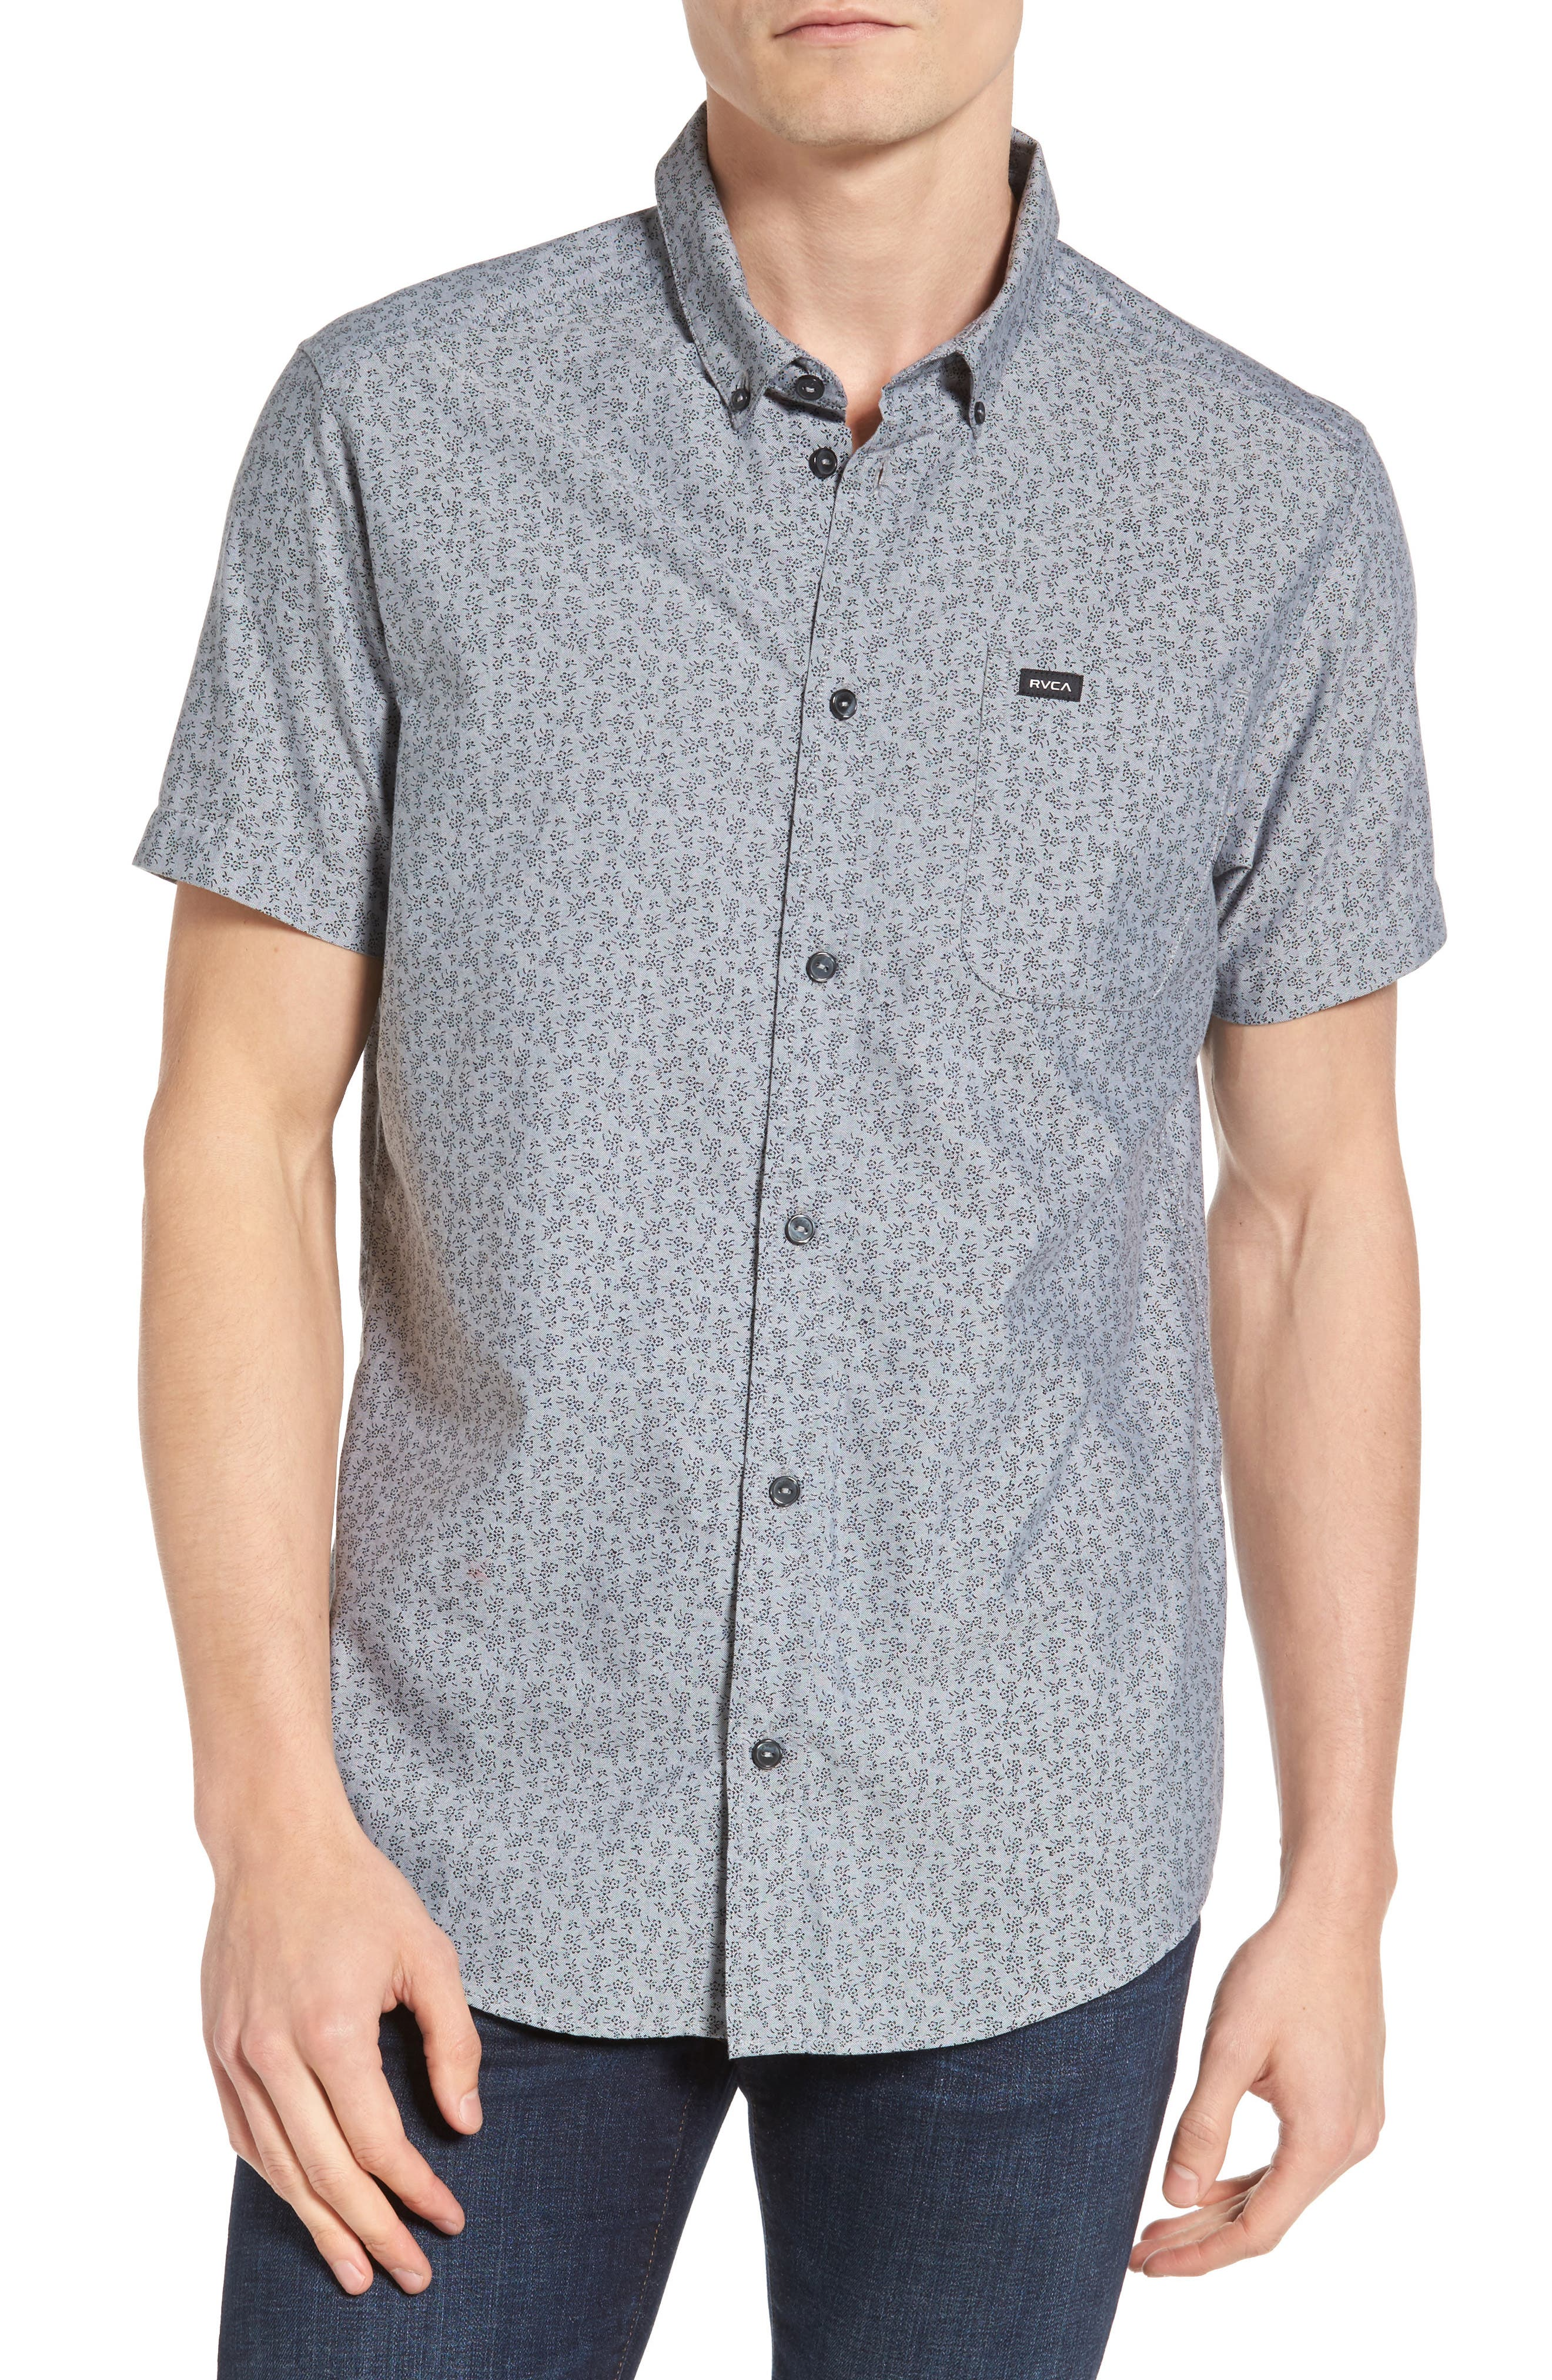 Main Image - RVCA That'll Do Floral Woven Shirt